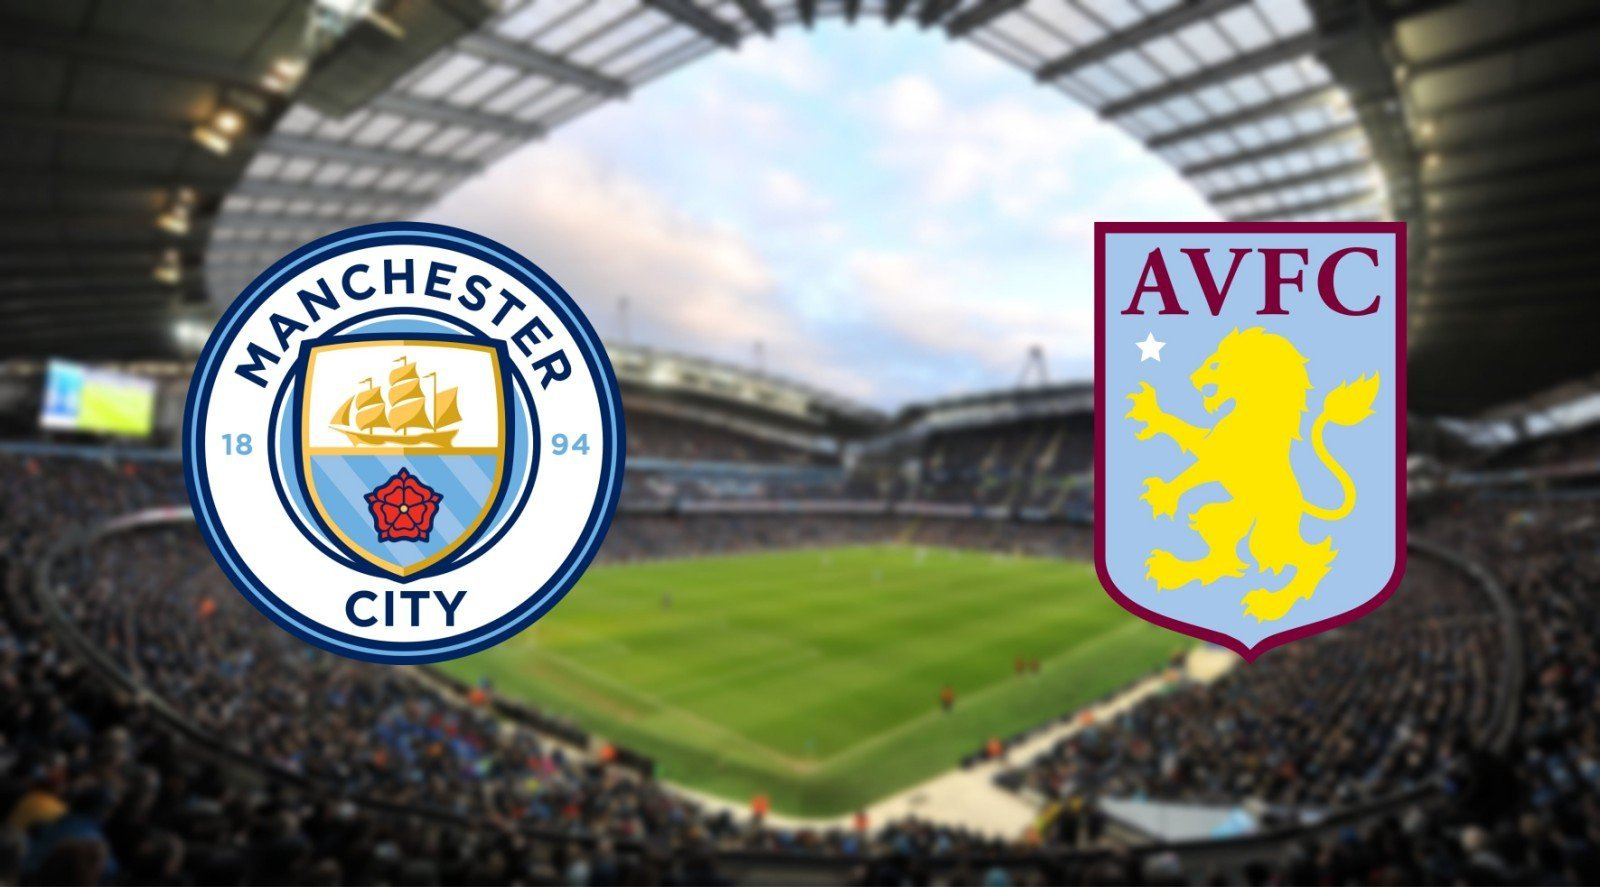 Manchester City vs Aston Villa Prediction: Premier Leage Match on 26.10.2019